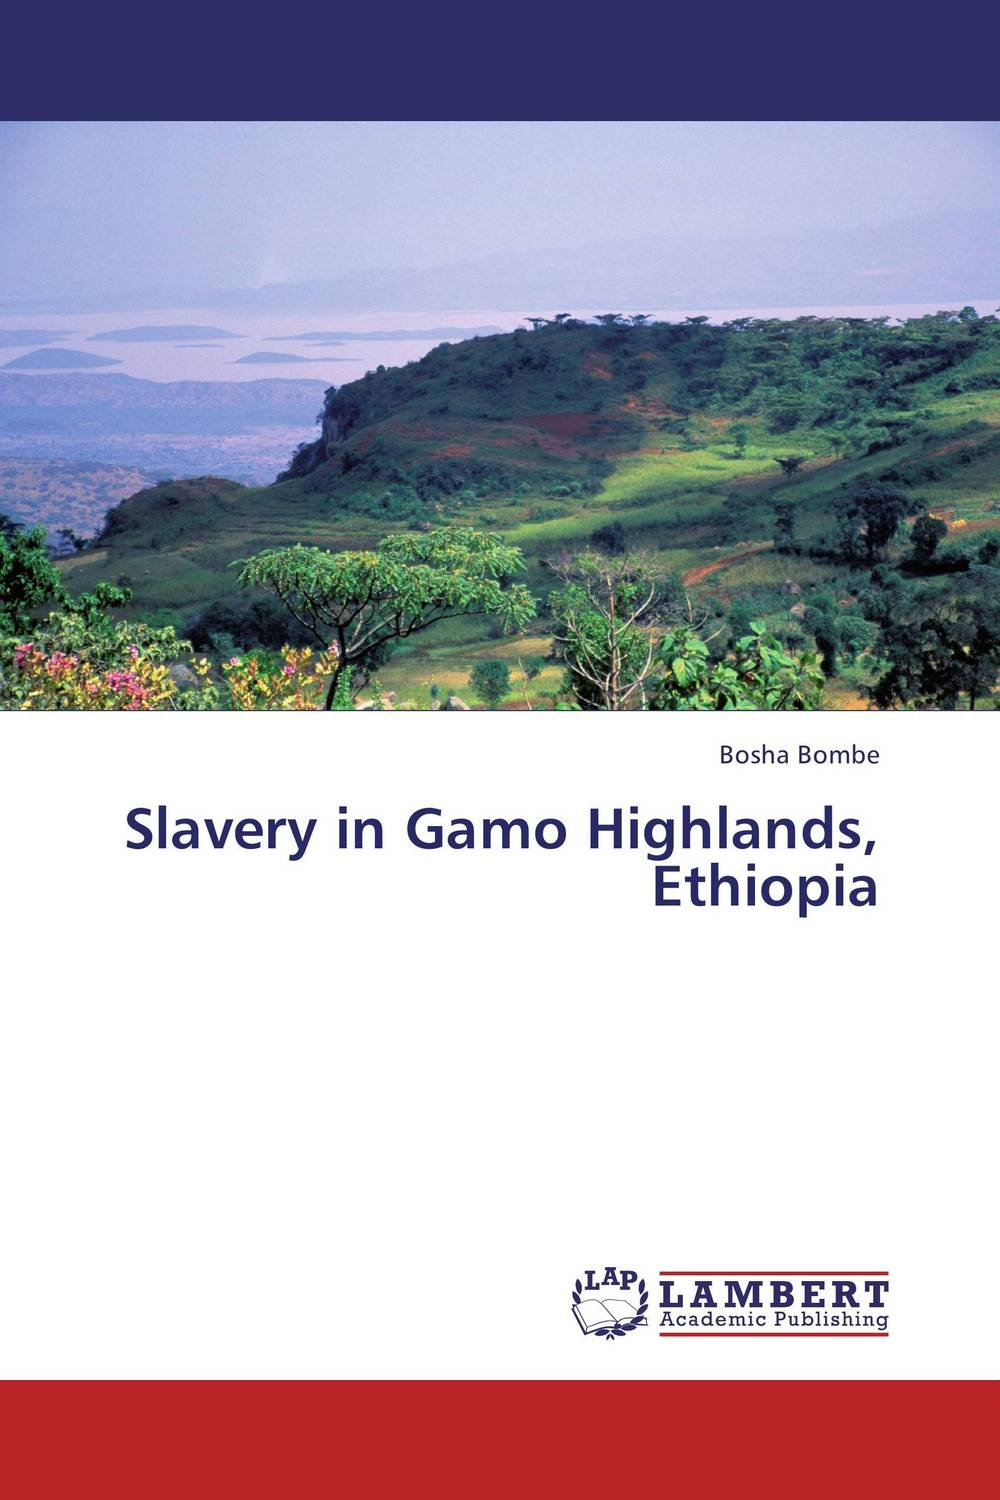 Фото Slavery in Gamo Highlands, Ethiopia cervical cancer in amhara region in ethiopia